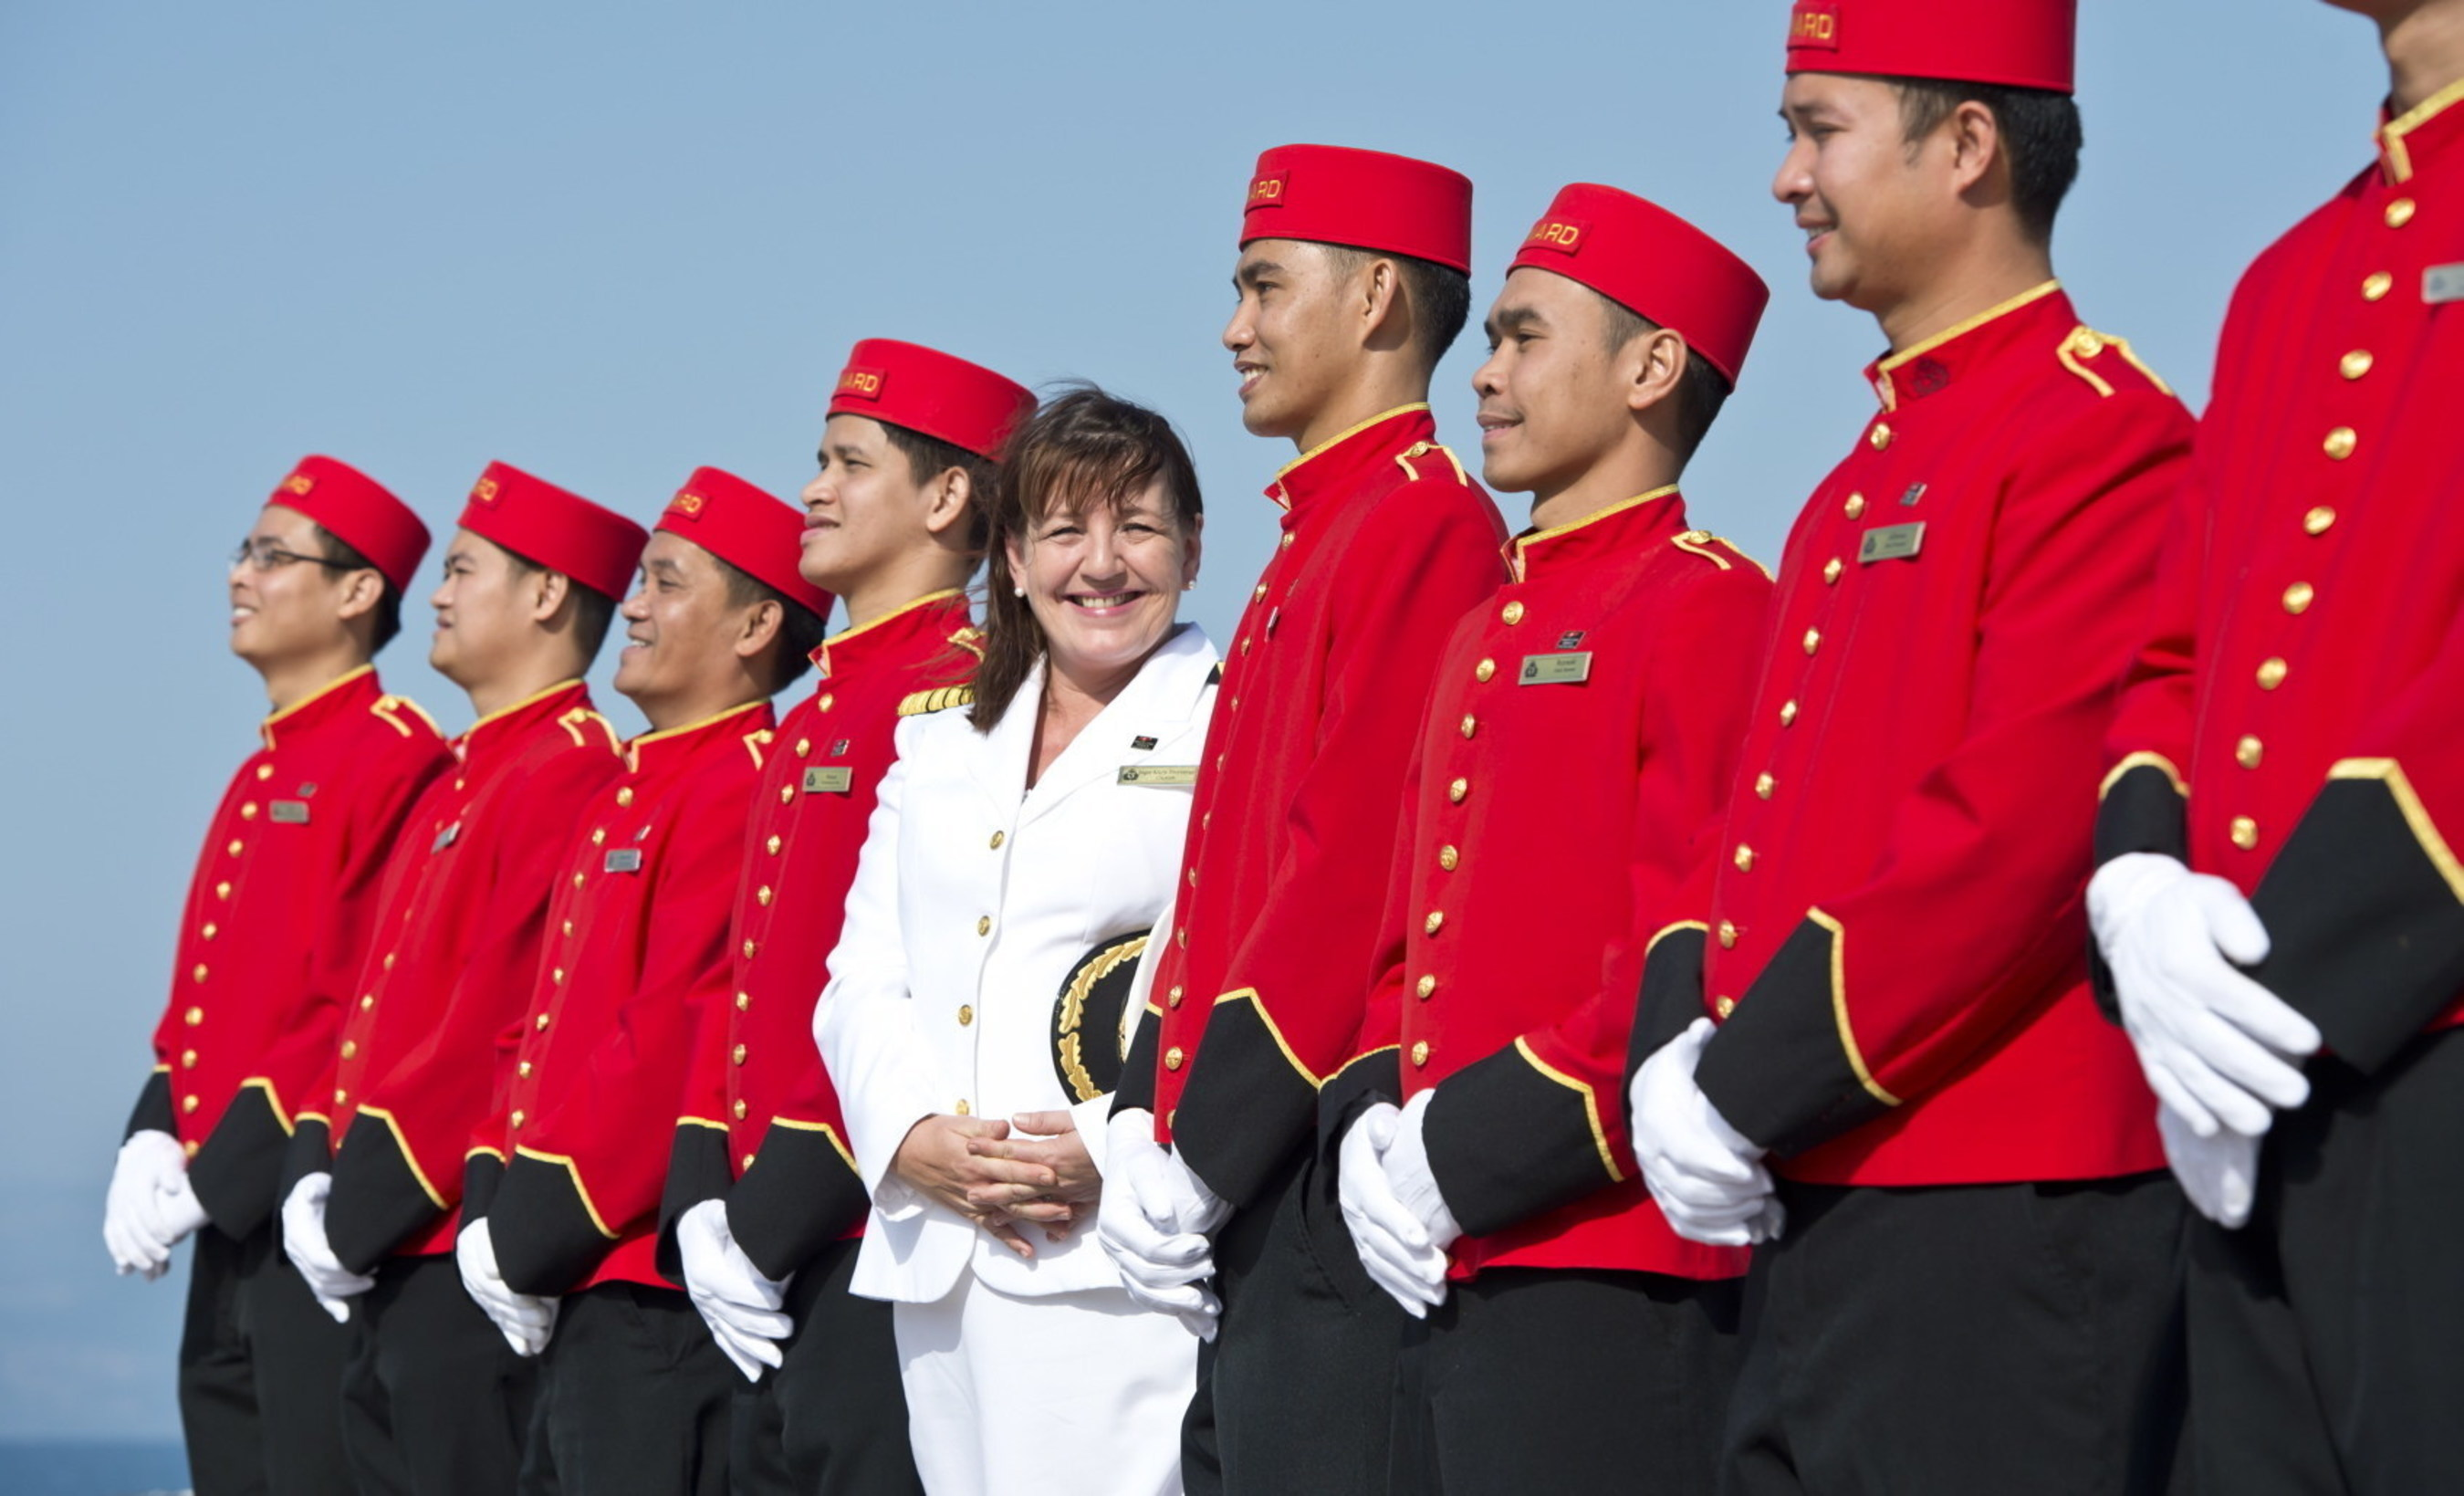 Captain Inger Klein Thorhauge, who helms Cunard ships, is among women with prominent roles at Carnival Corporation. Photo courtesy of Cunard.